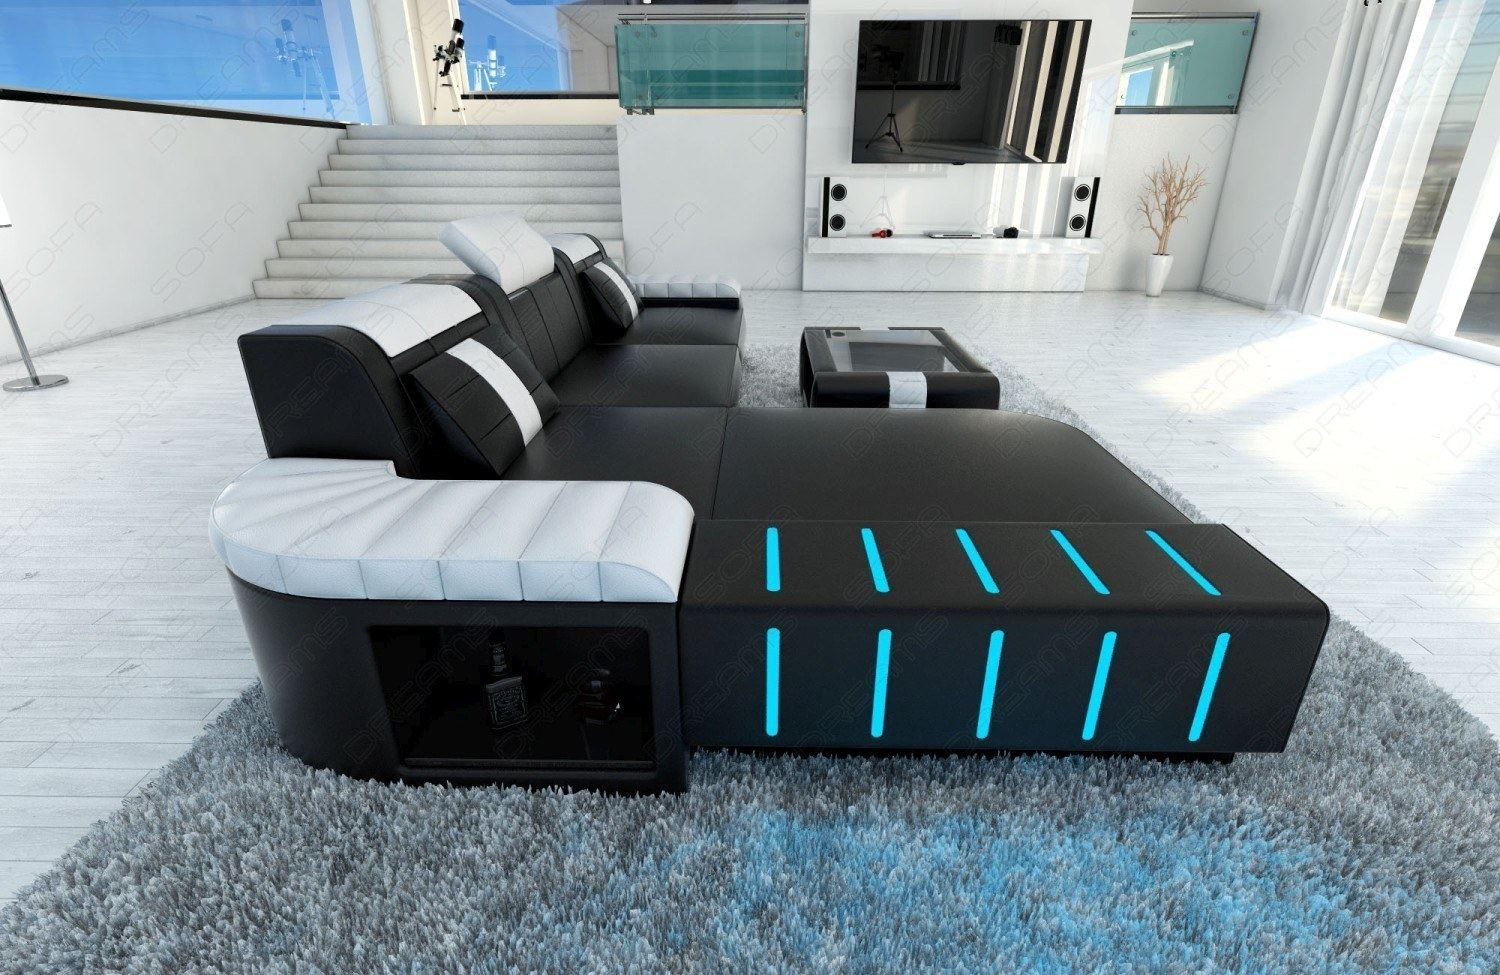 eckcouch design bellagio l form sofa mit led beleuchtung schwarz weiss ebay. Black Bedroom Furniture Sets. Home Design Ideas